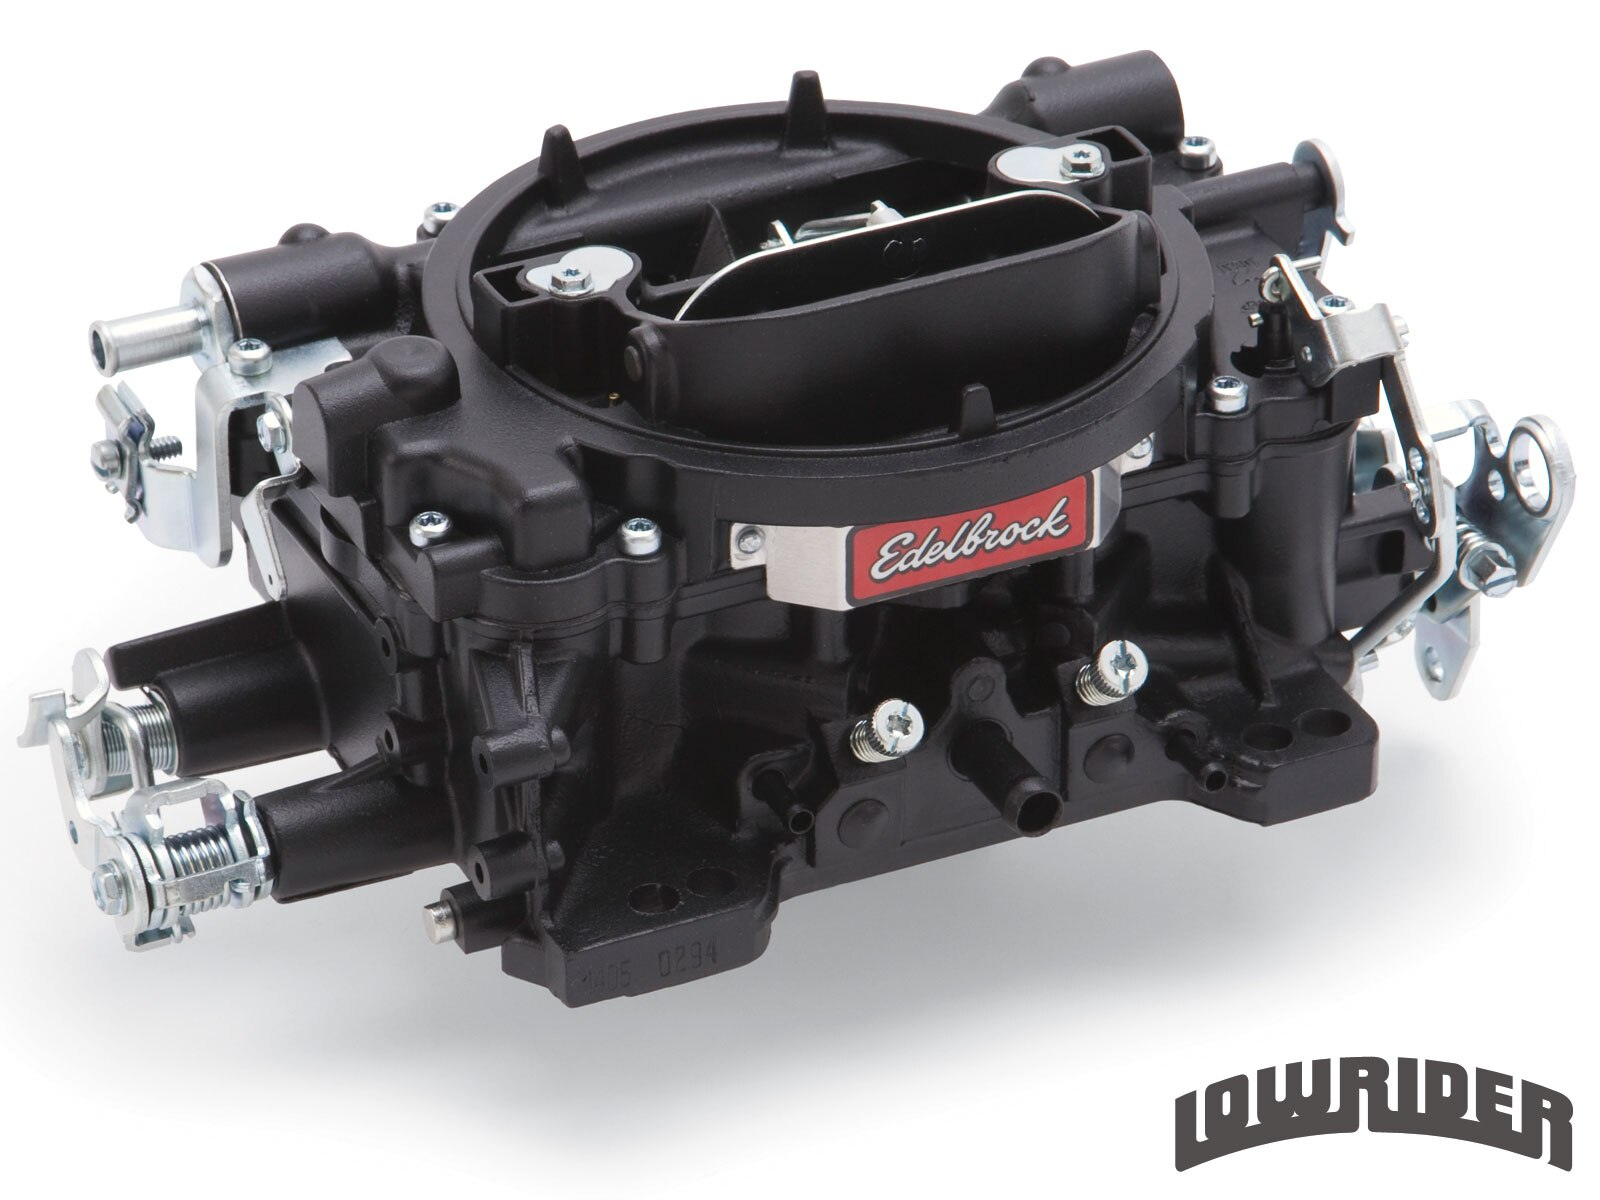 1212-lrmp-01-o-performance-guide-2012-edelbrock-black-performer-series-carburetor1